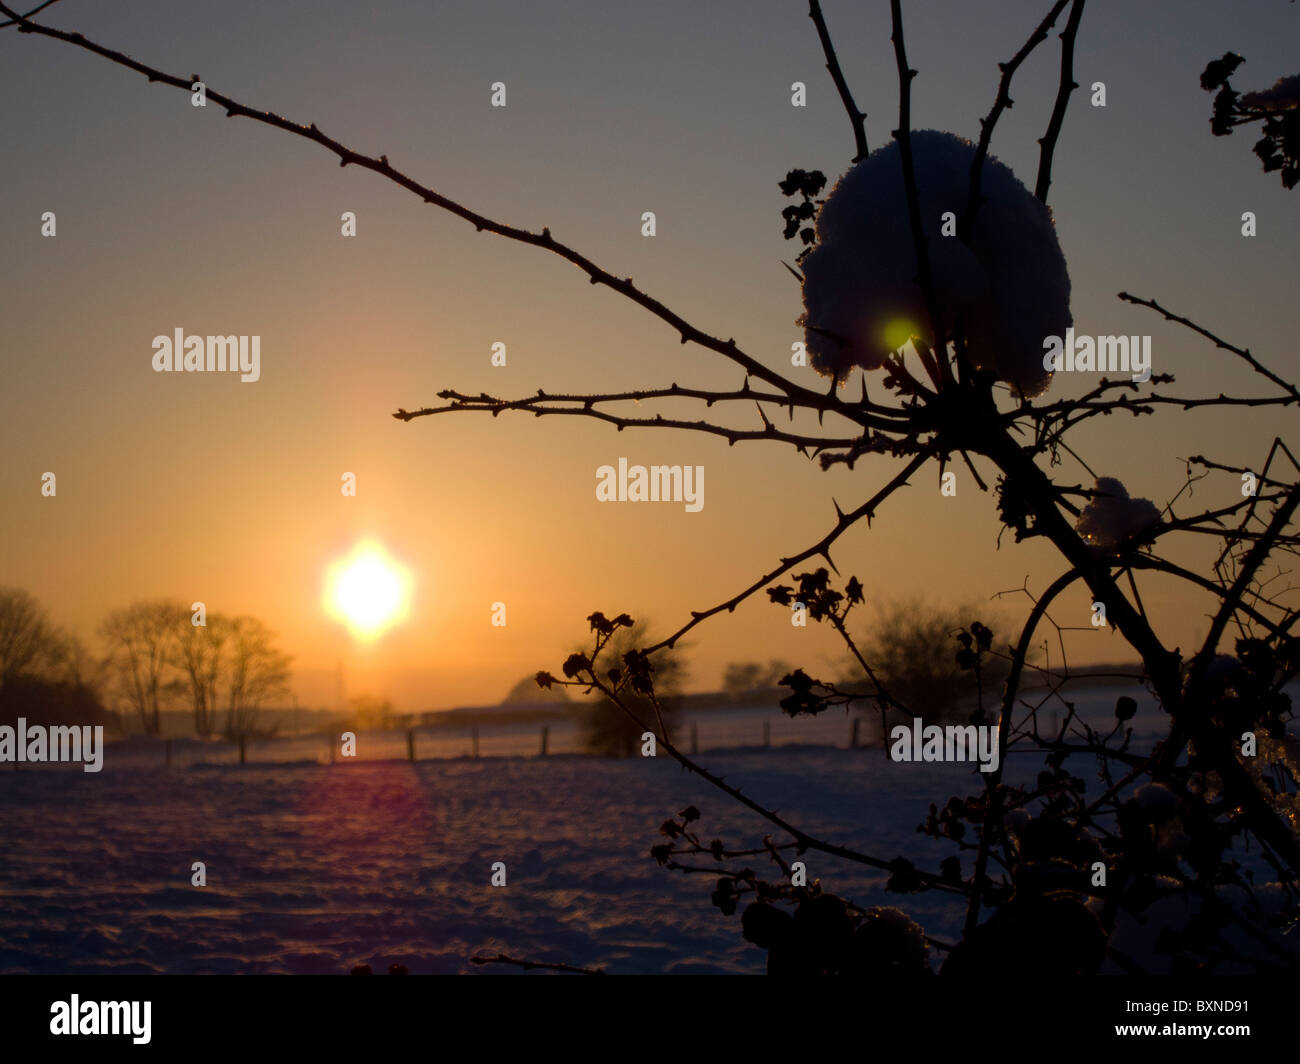 Christmas day 2010 in Worcestershire, England. Sunsetting in the frozen snowy countryside silhouetting the hedgerow. - Stock Image